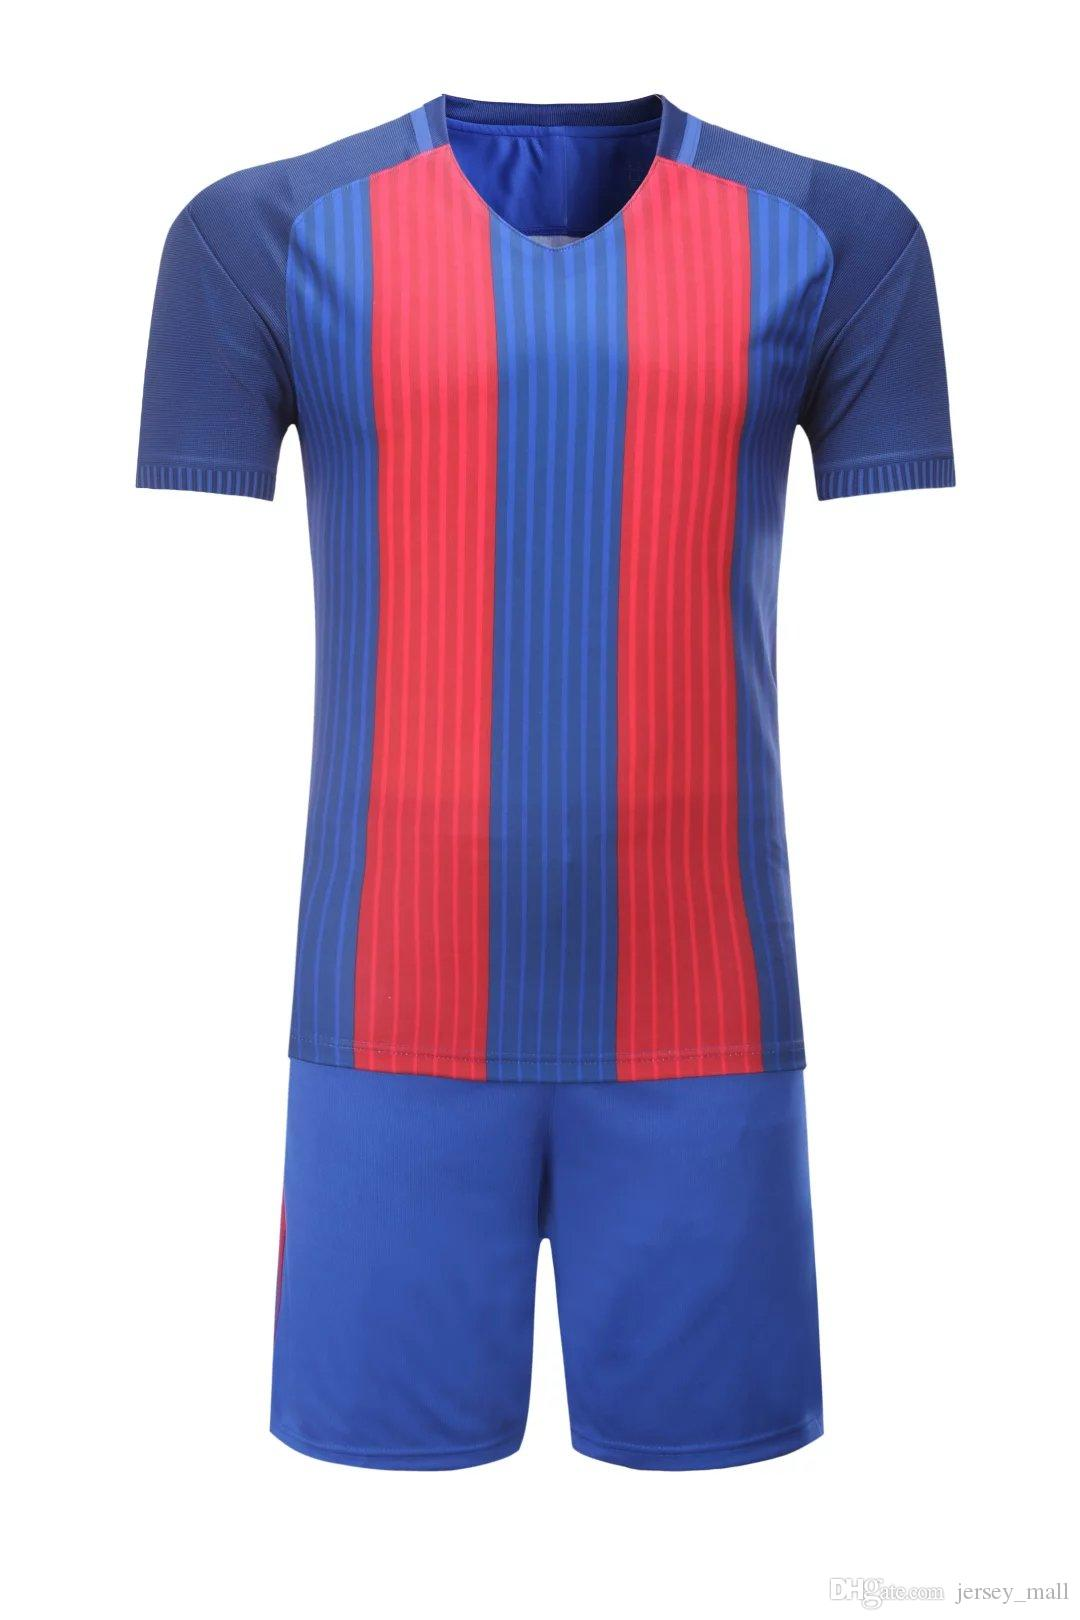 2018 soccer jersey kit wholesale tshirt shorts pants football